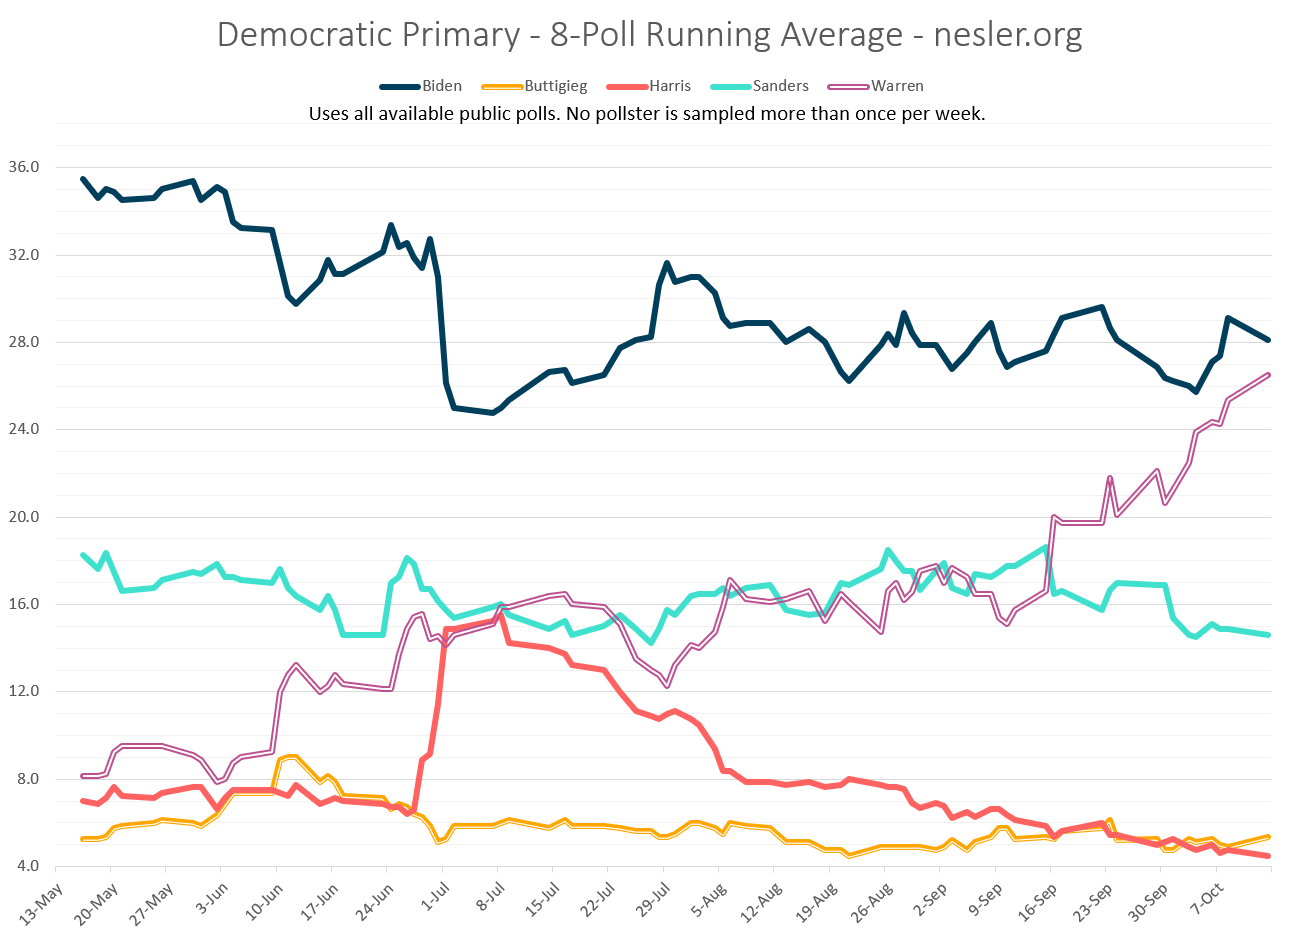 National Polling for Democratic Primary as of October 2019